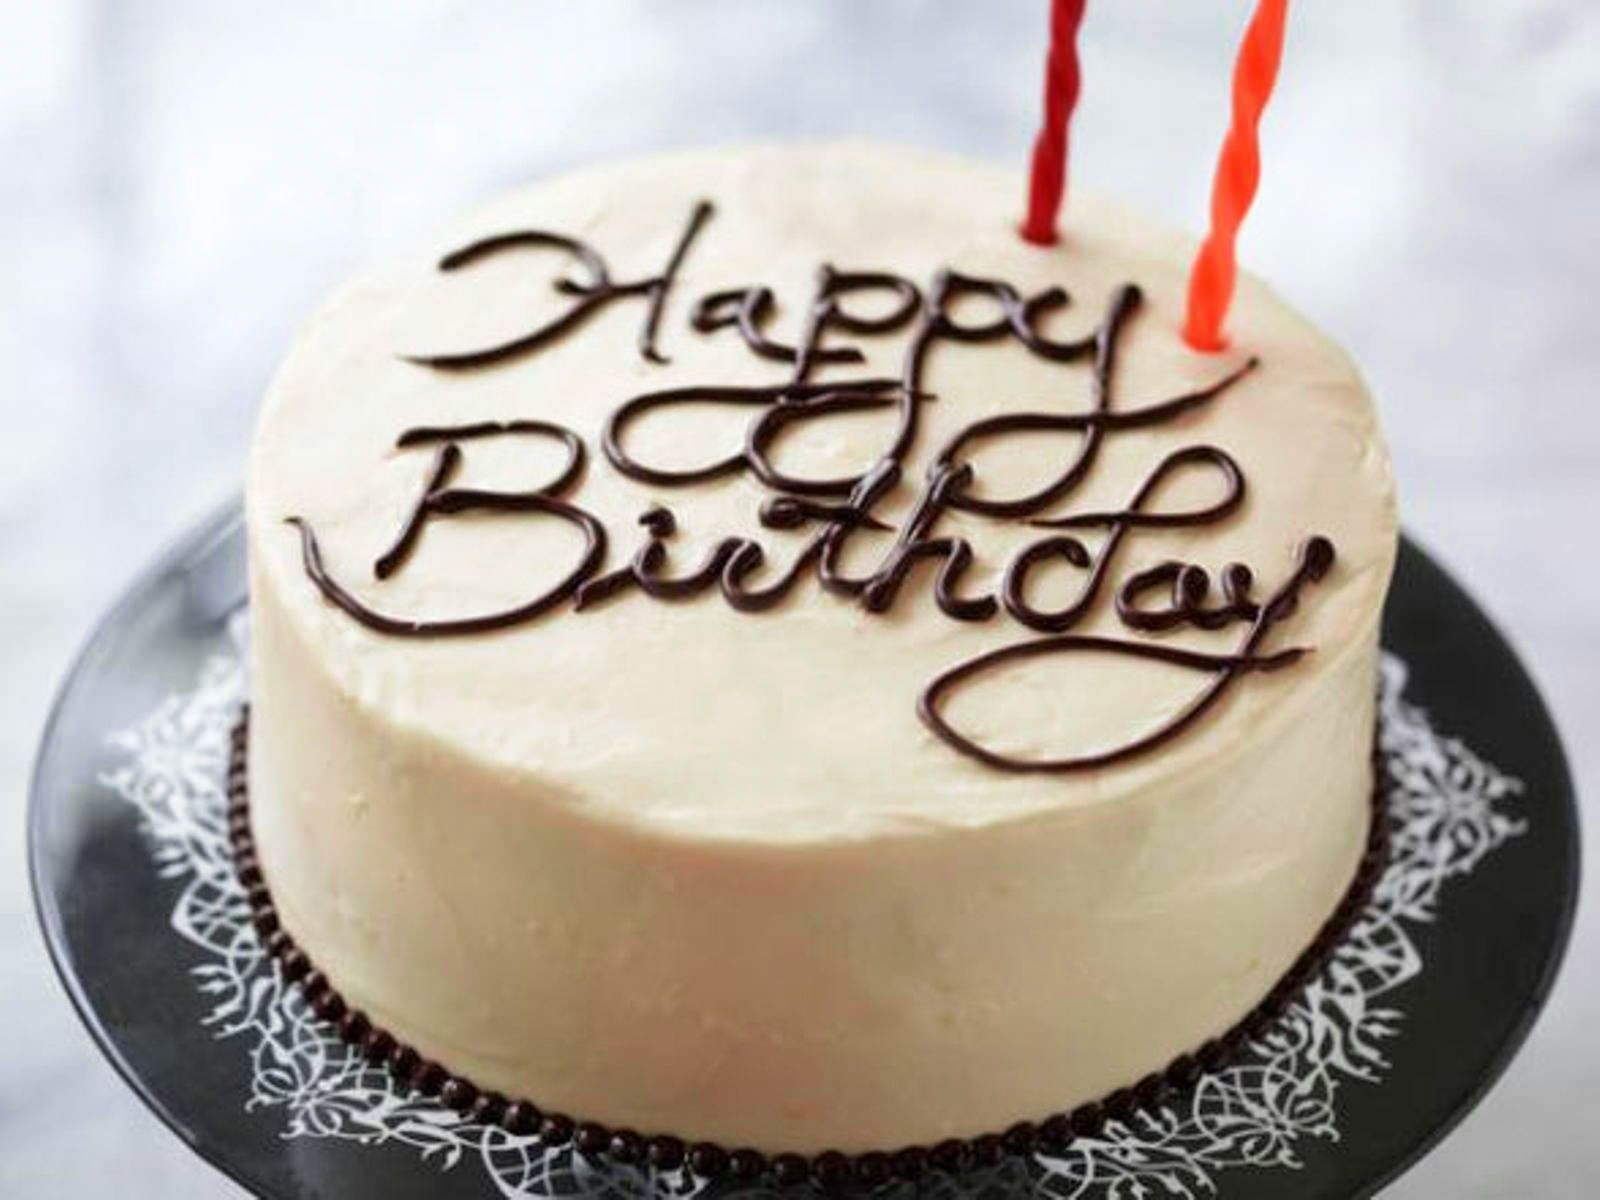 birthday cake images download, adorable hdq backgrounds of 550×550